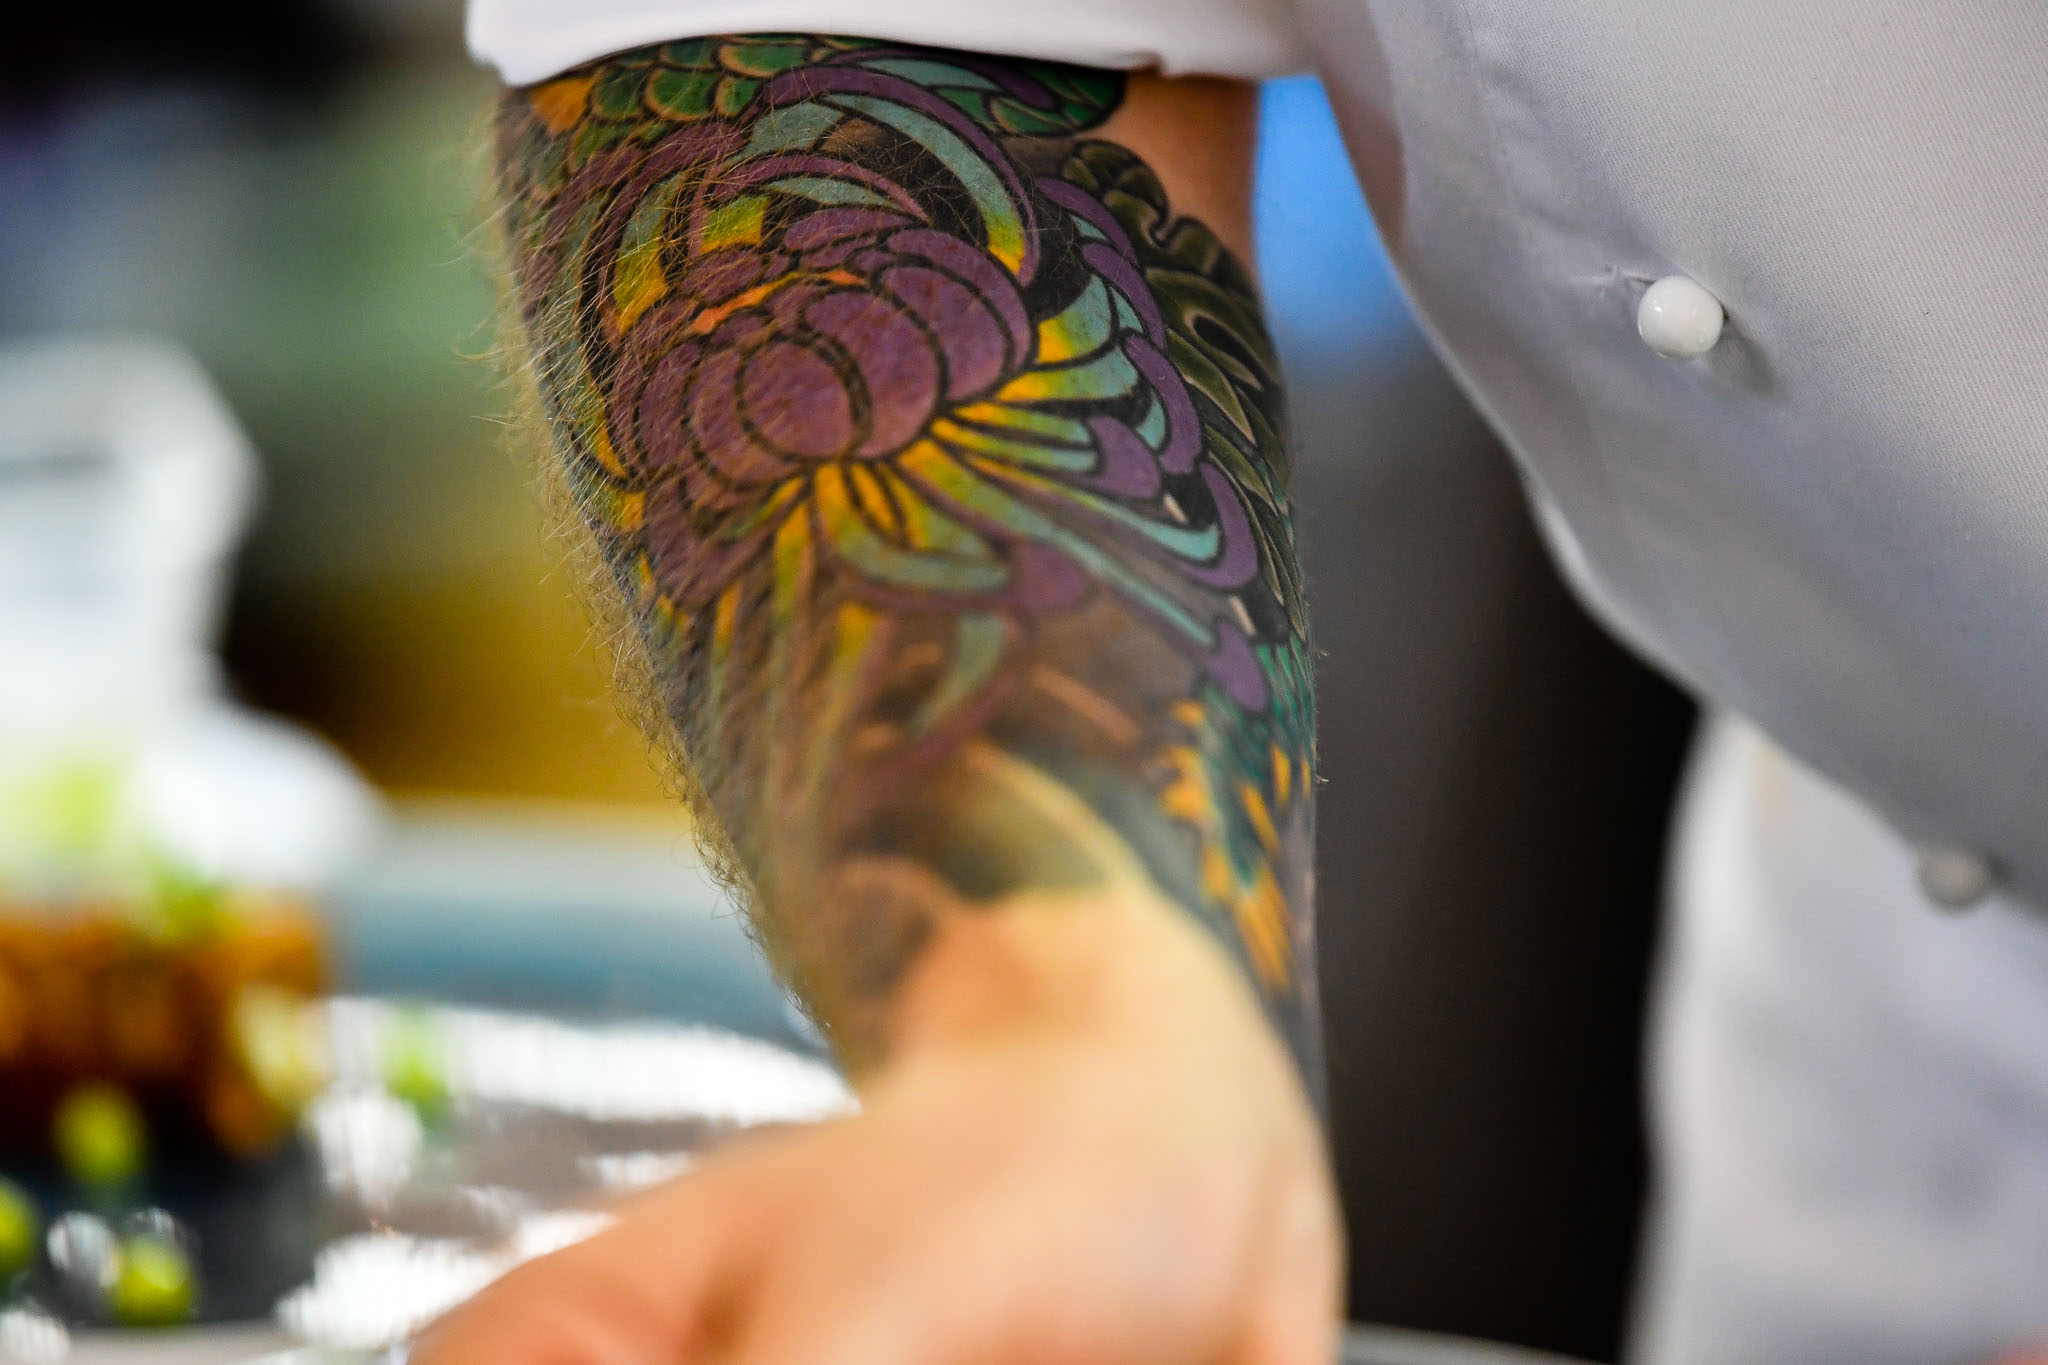 Melbourne, 30 May 2017 - A tatoo on the arm of Andrew Ballard of the Simmer Culinary in Mornington at the Australian selection trials of the Bocuse d'Or culinary competition held during the Food Service Australia show at the Royal Exhibition Building in Melbourne, Australia. Photo Sydney Low